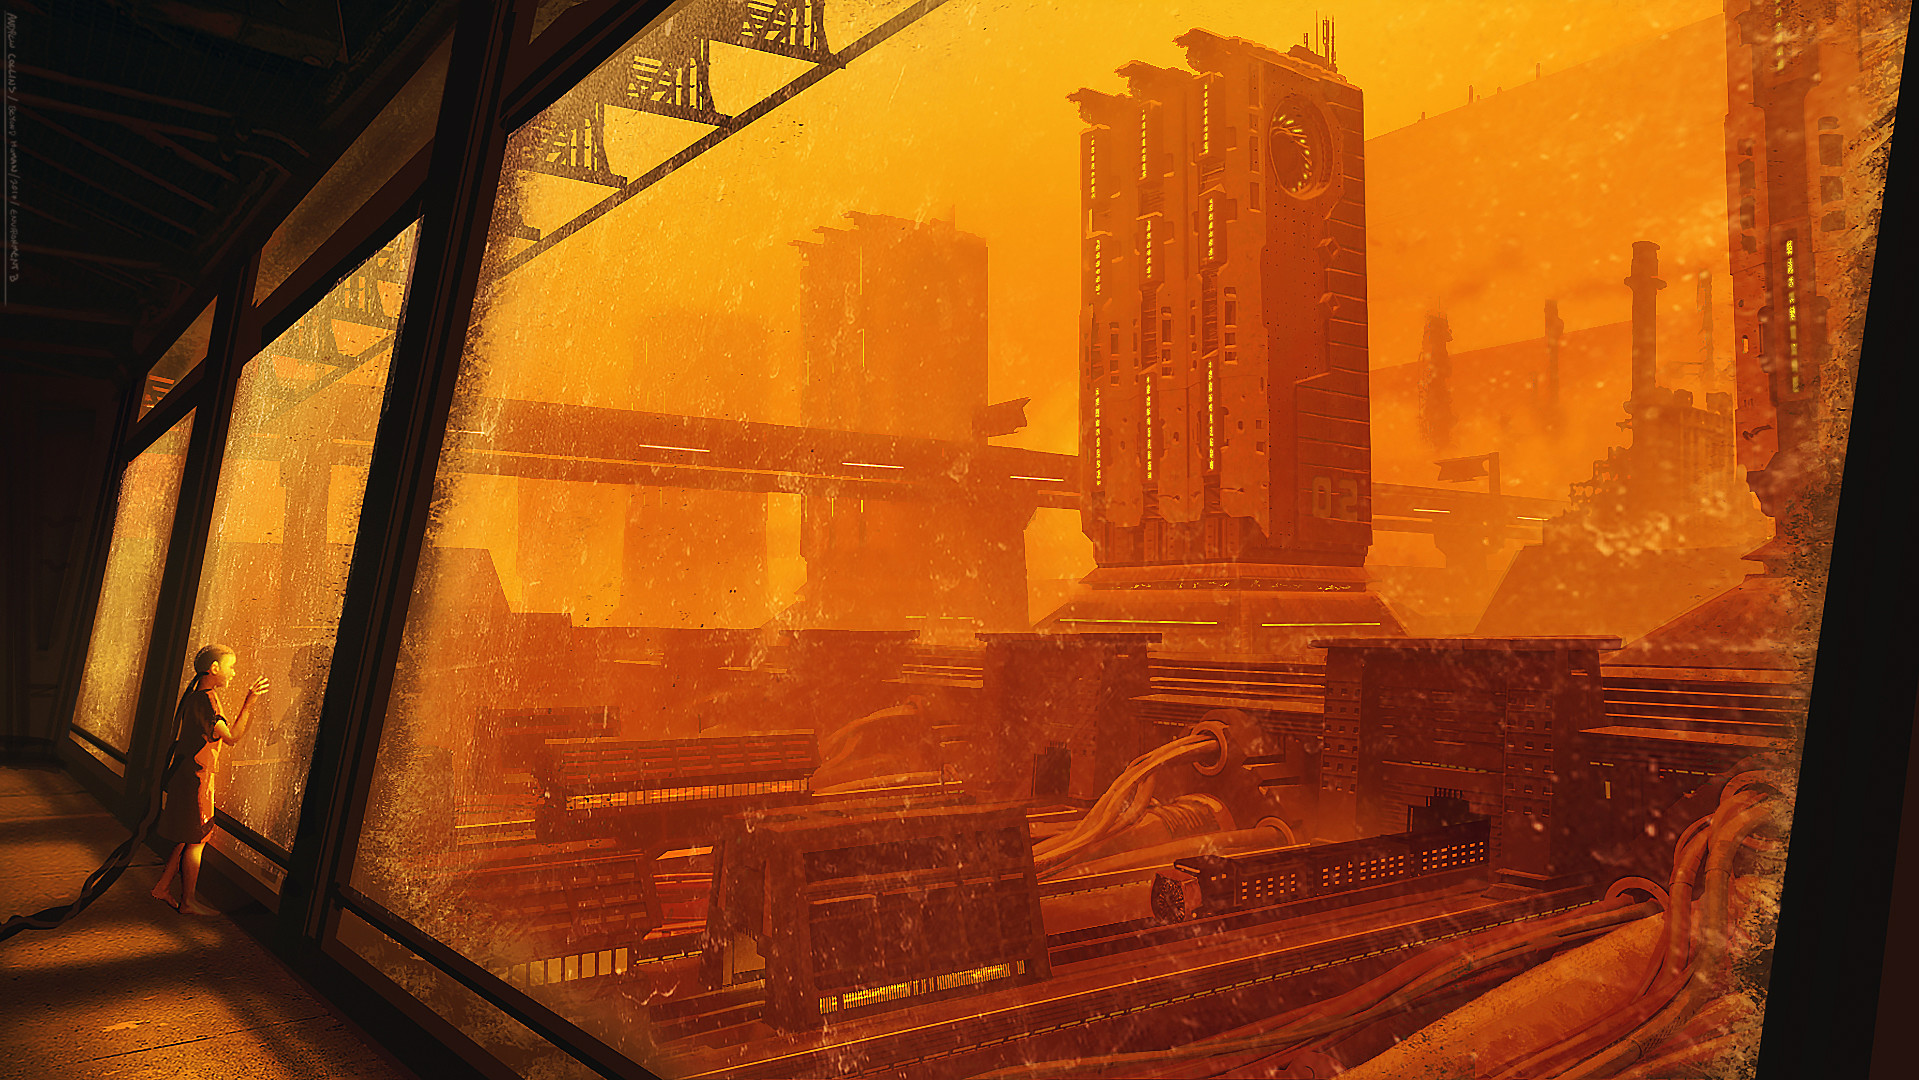 The Science Fiction Art of Andrew Collins